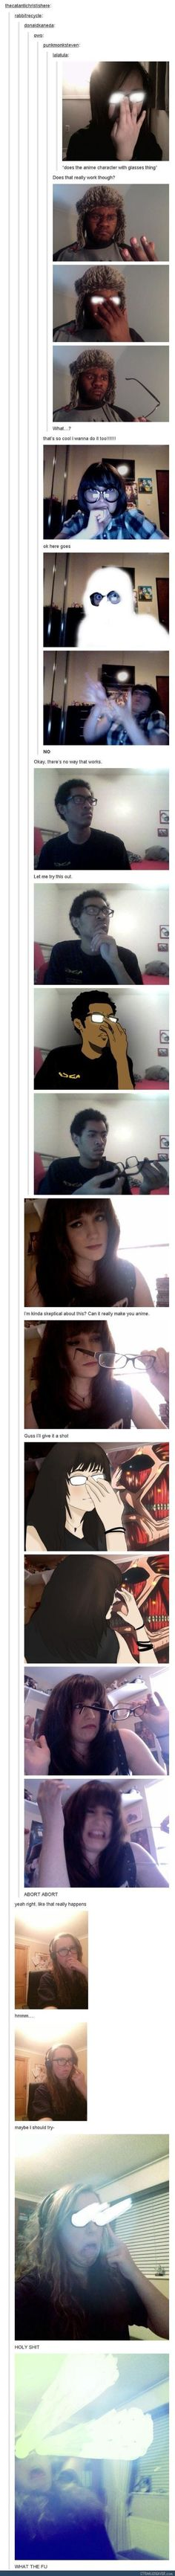 Omg... XD the anime glasses thing. So funny XD<<excuse the language